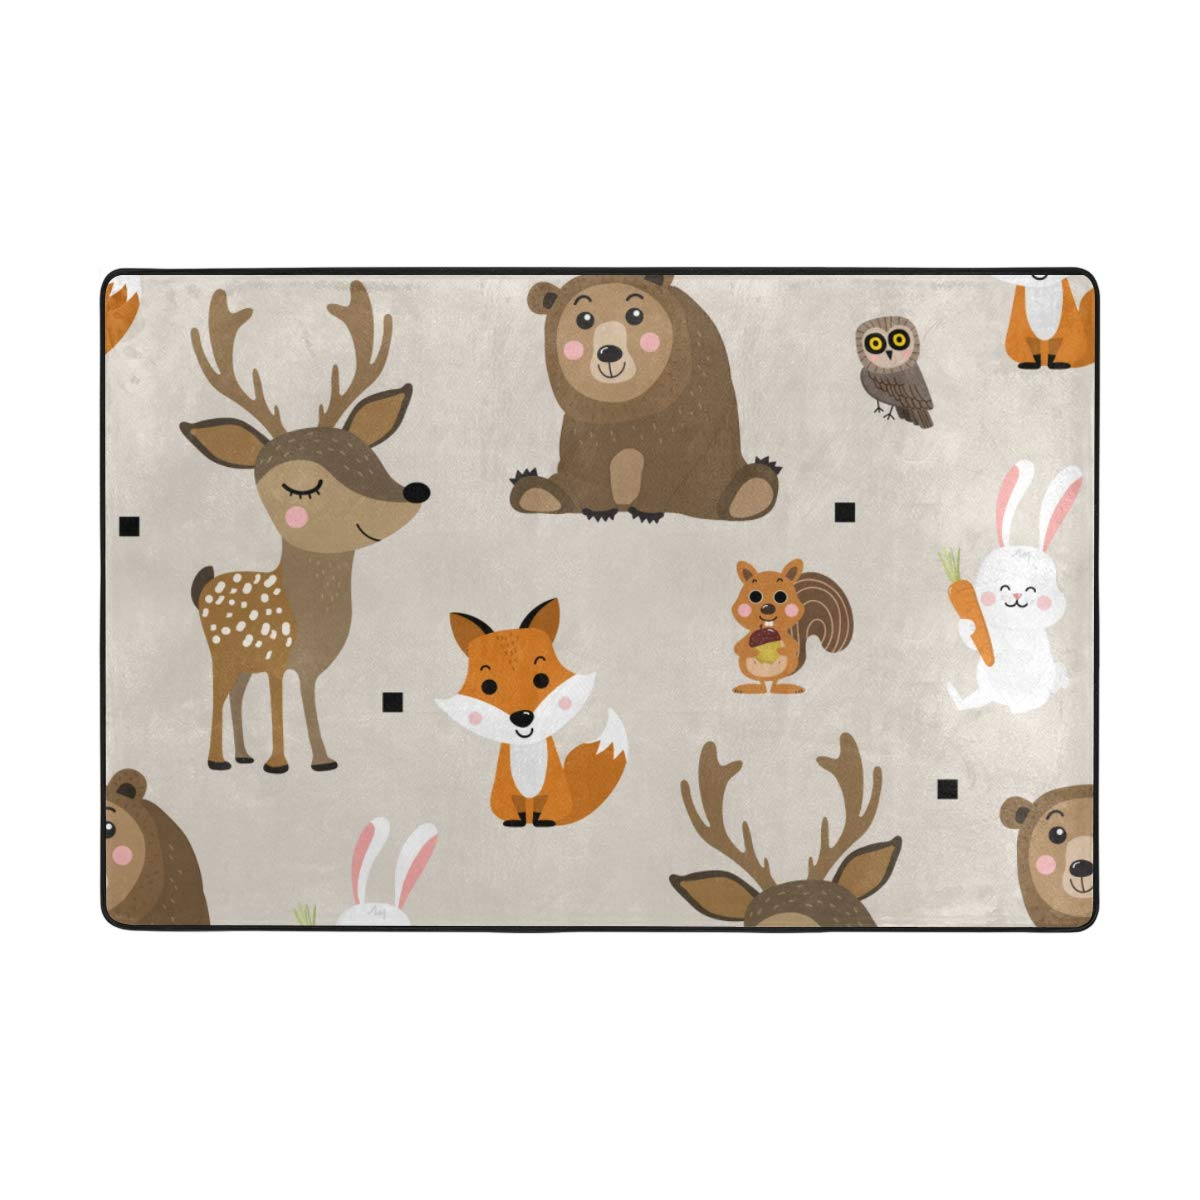 Vantaso Area Rugs Soft Foam Cute Forest Animals Deer Bear Fox Rabbit Non Slip 72x48 inch Playmats for Kids Playing Room Living Room